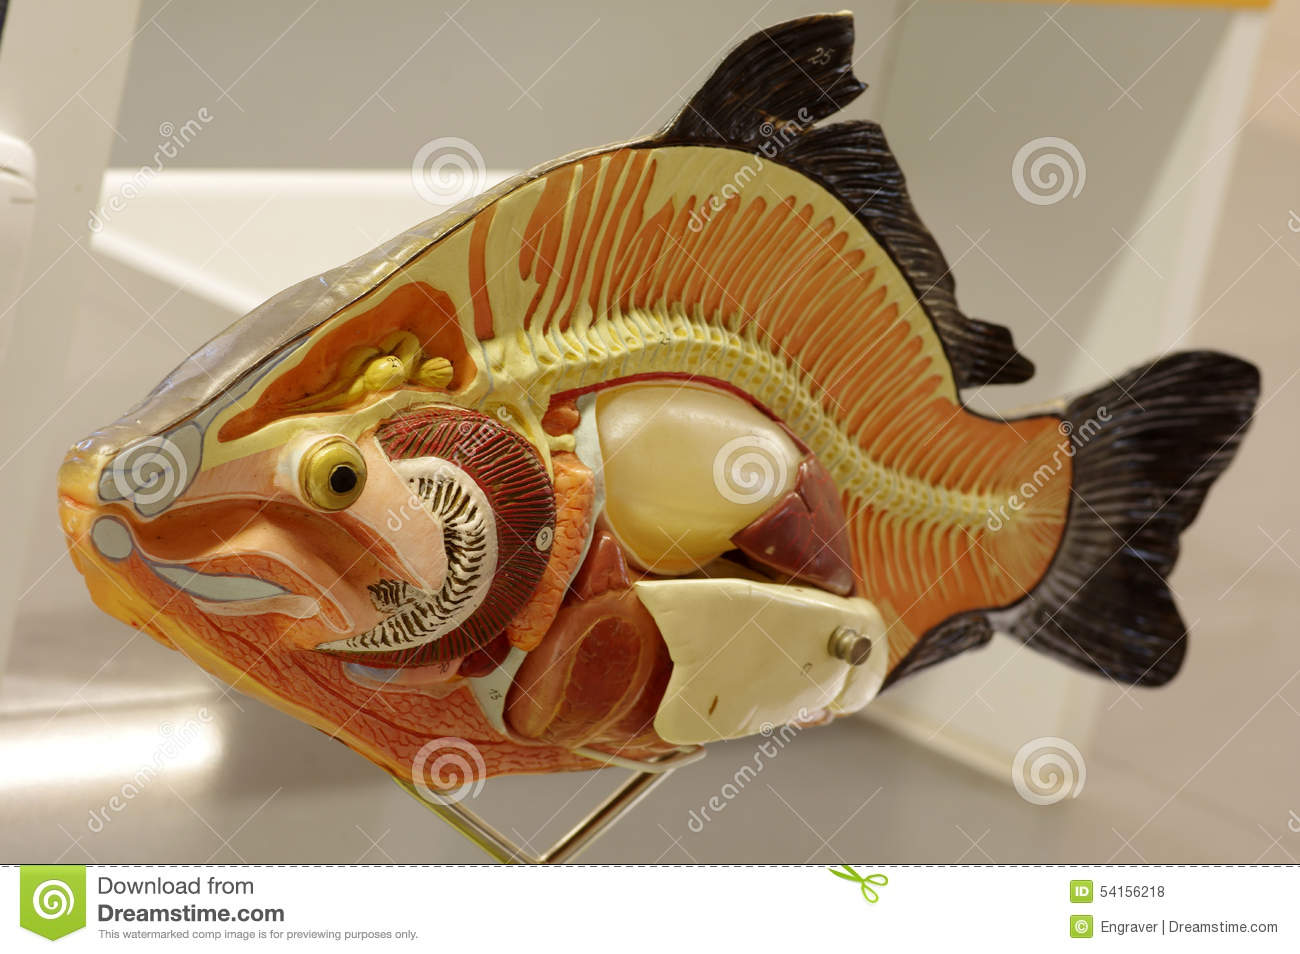 Carp fish animals anatomy stock photo. Image of carp ...